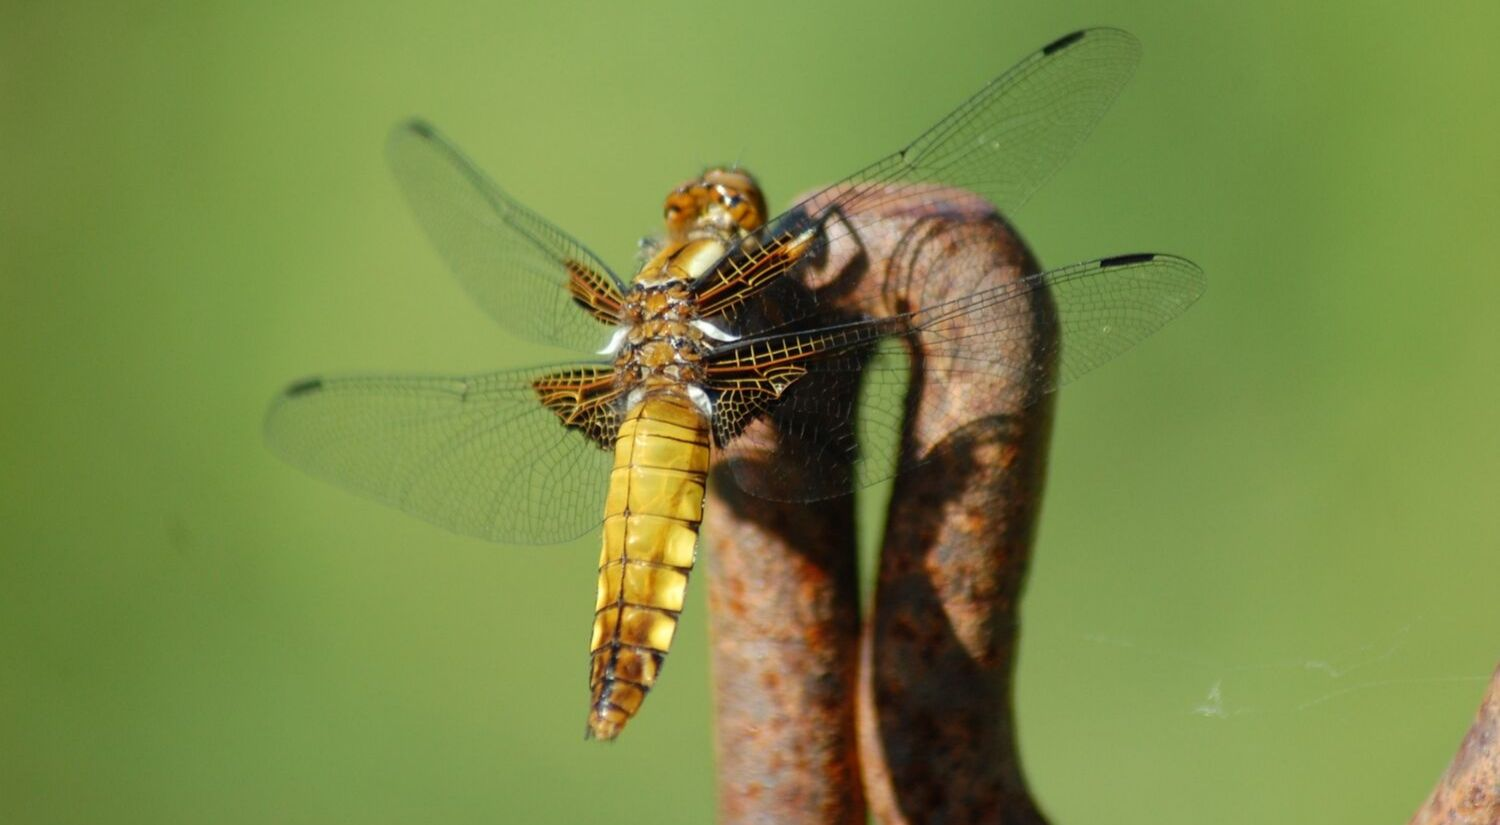 A photo of a dragonfly